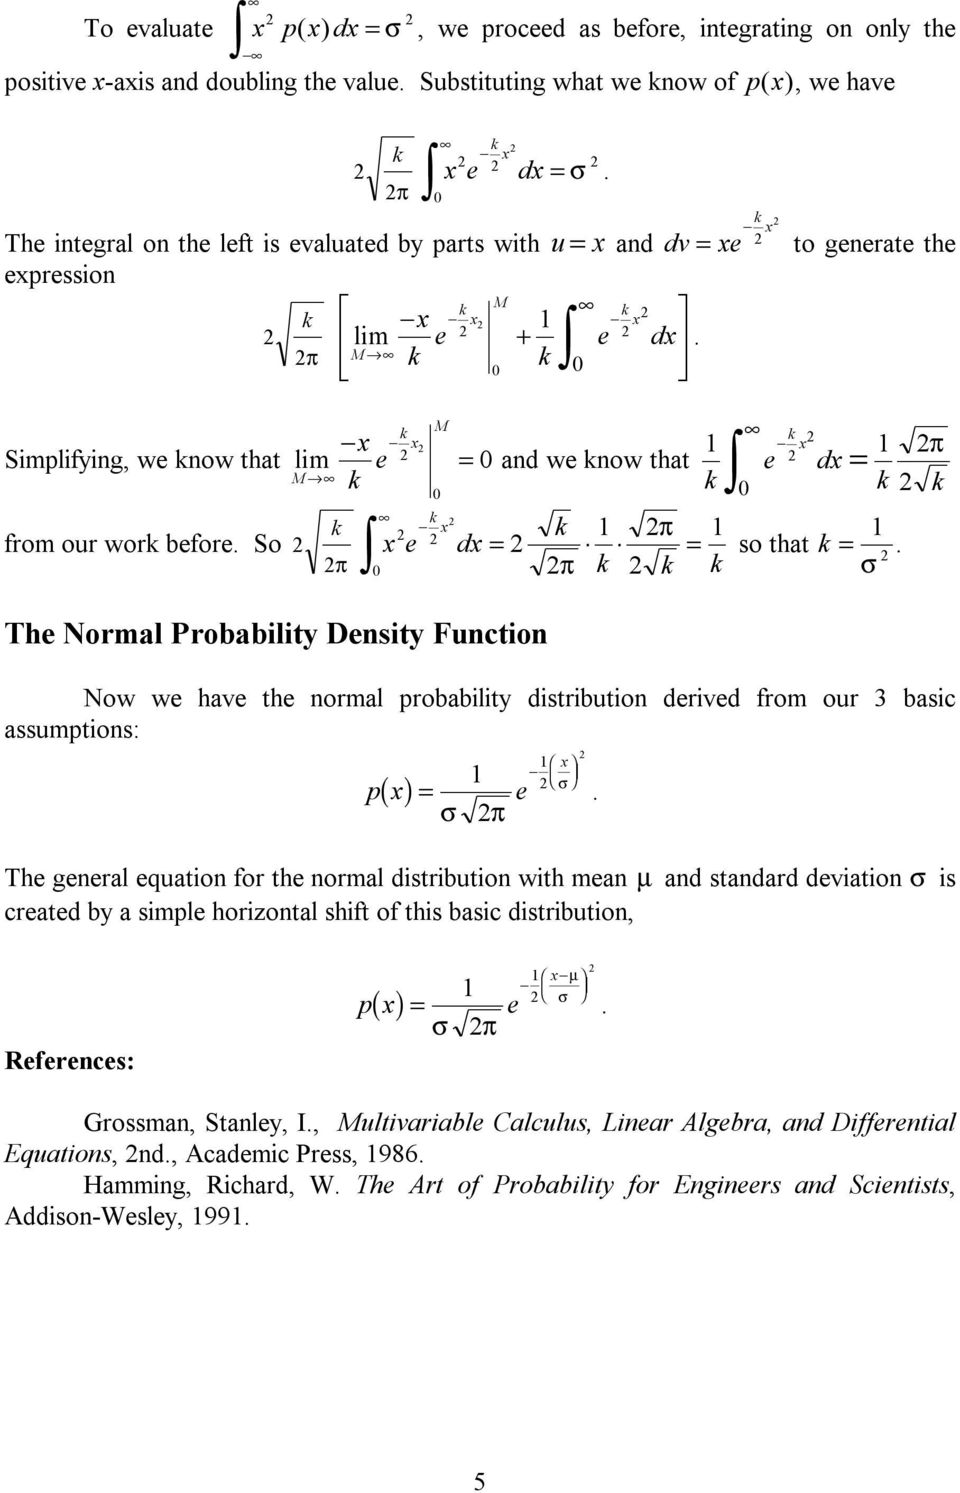 Now w hav th normal probability distribution drivd from our 3 basic assumptions: x pbxg H G I K J σ σ π Th gnral quation for th normal distribution with man µ and standard dviation σ is cratd by a